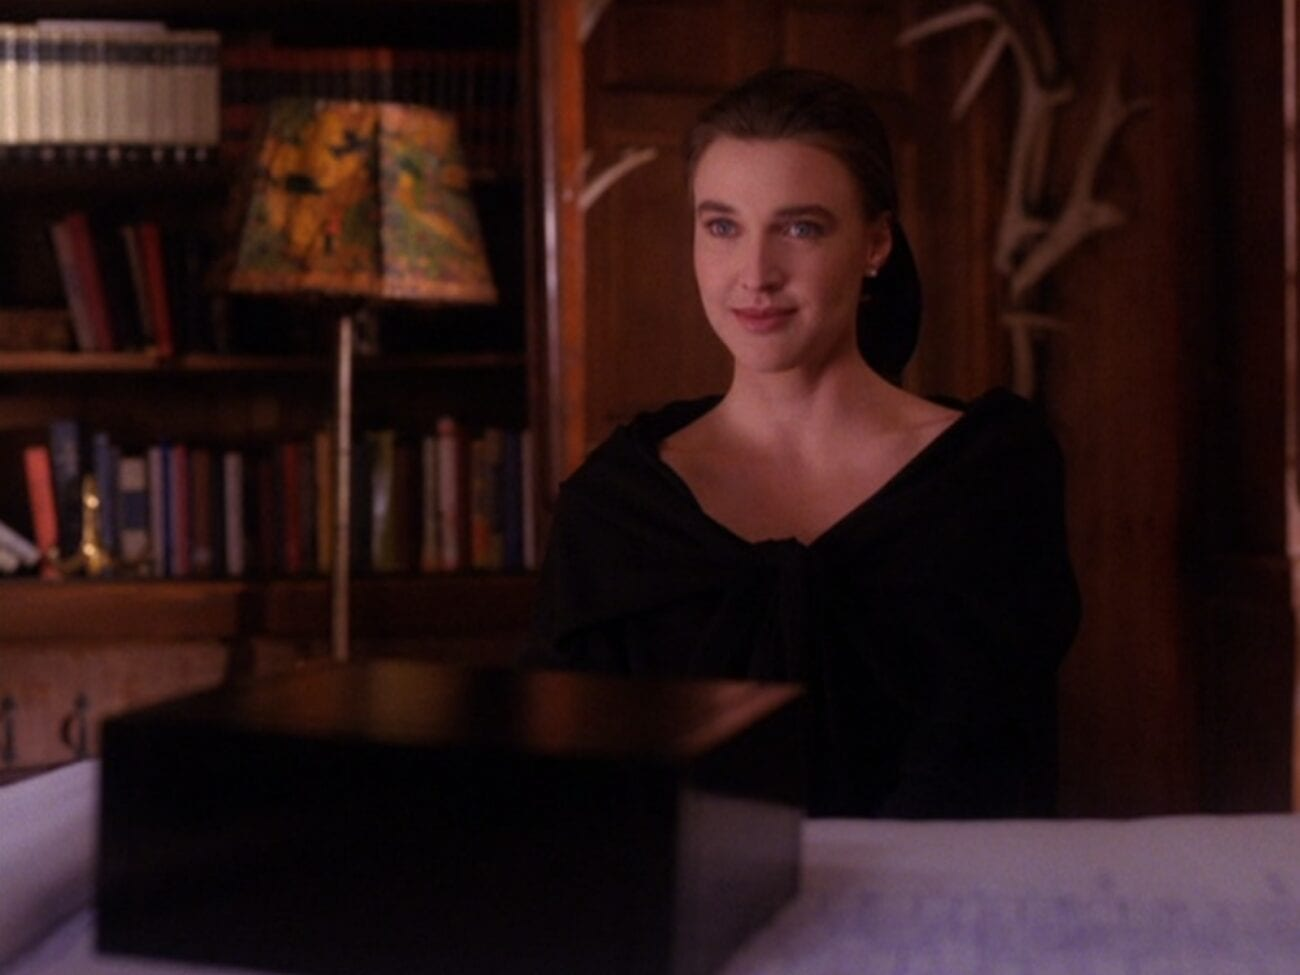 =ones, dressed in mourning black, sits at a desk, a large black box in front of her